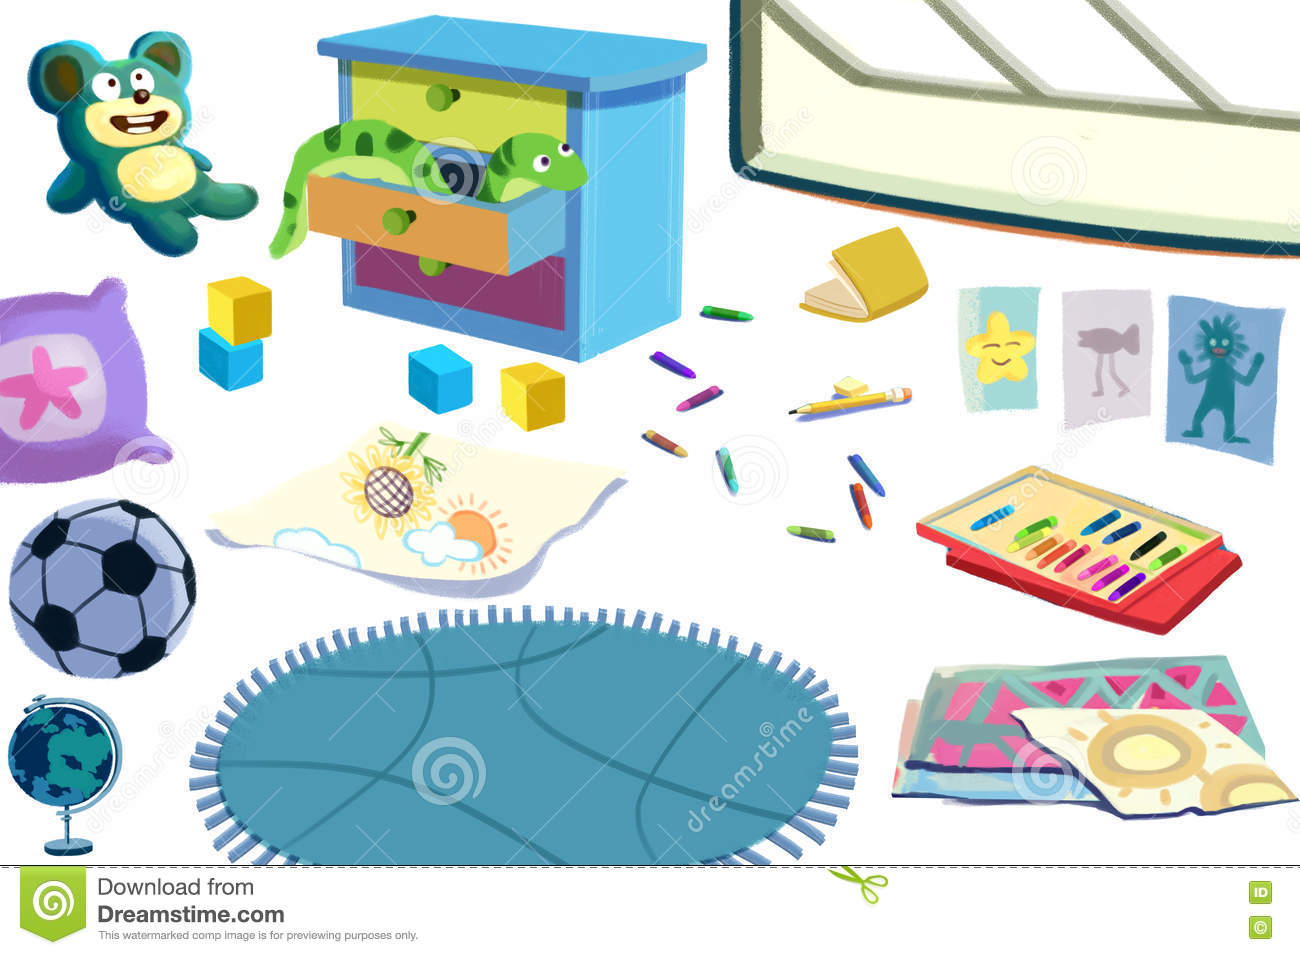 Clip Art Set: The Kid Room Objects: Toys, Football, Book, Color.